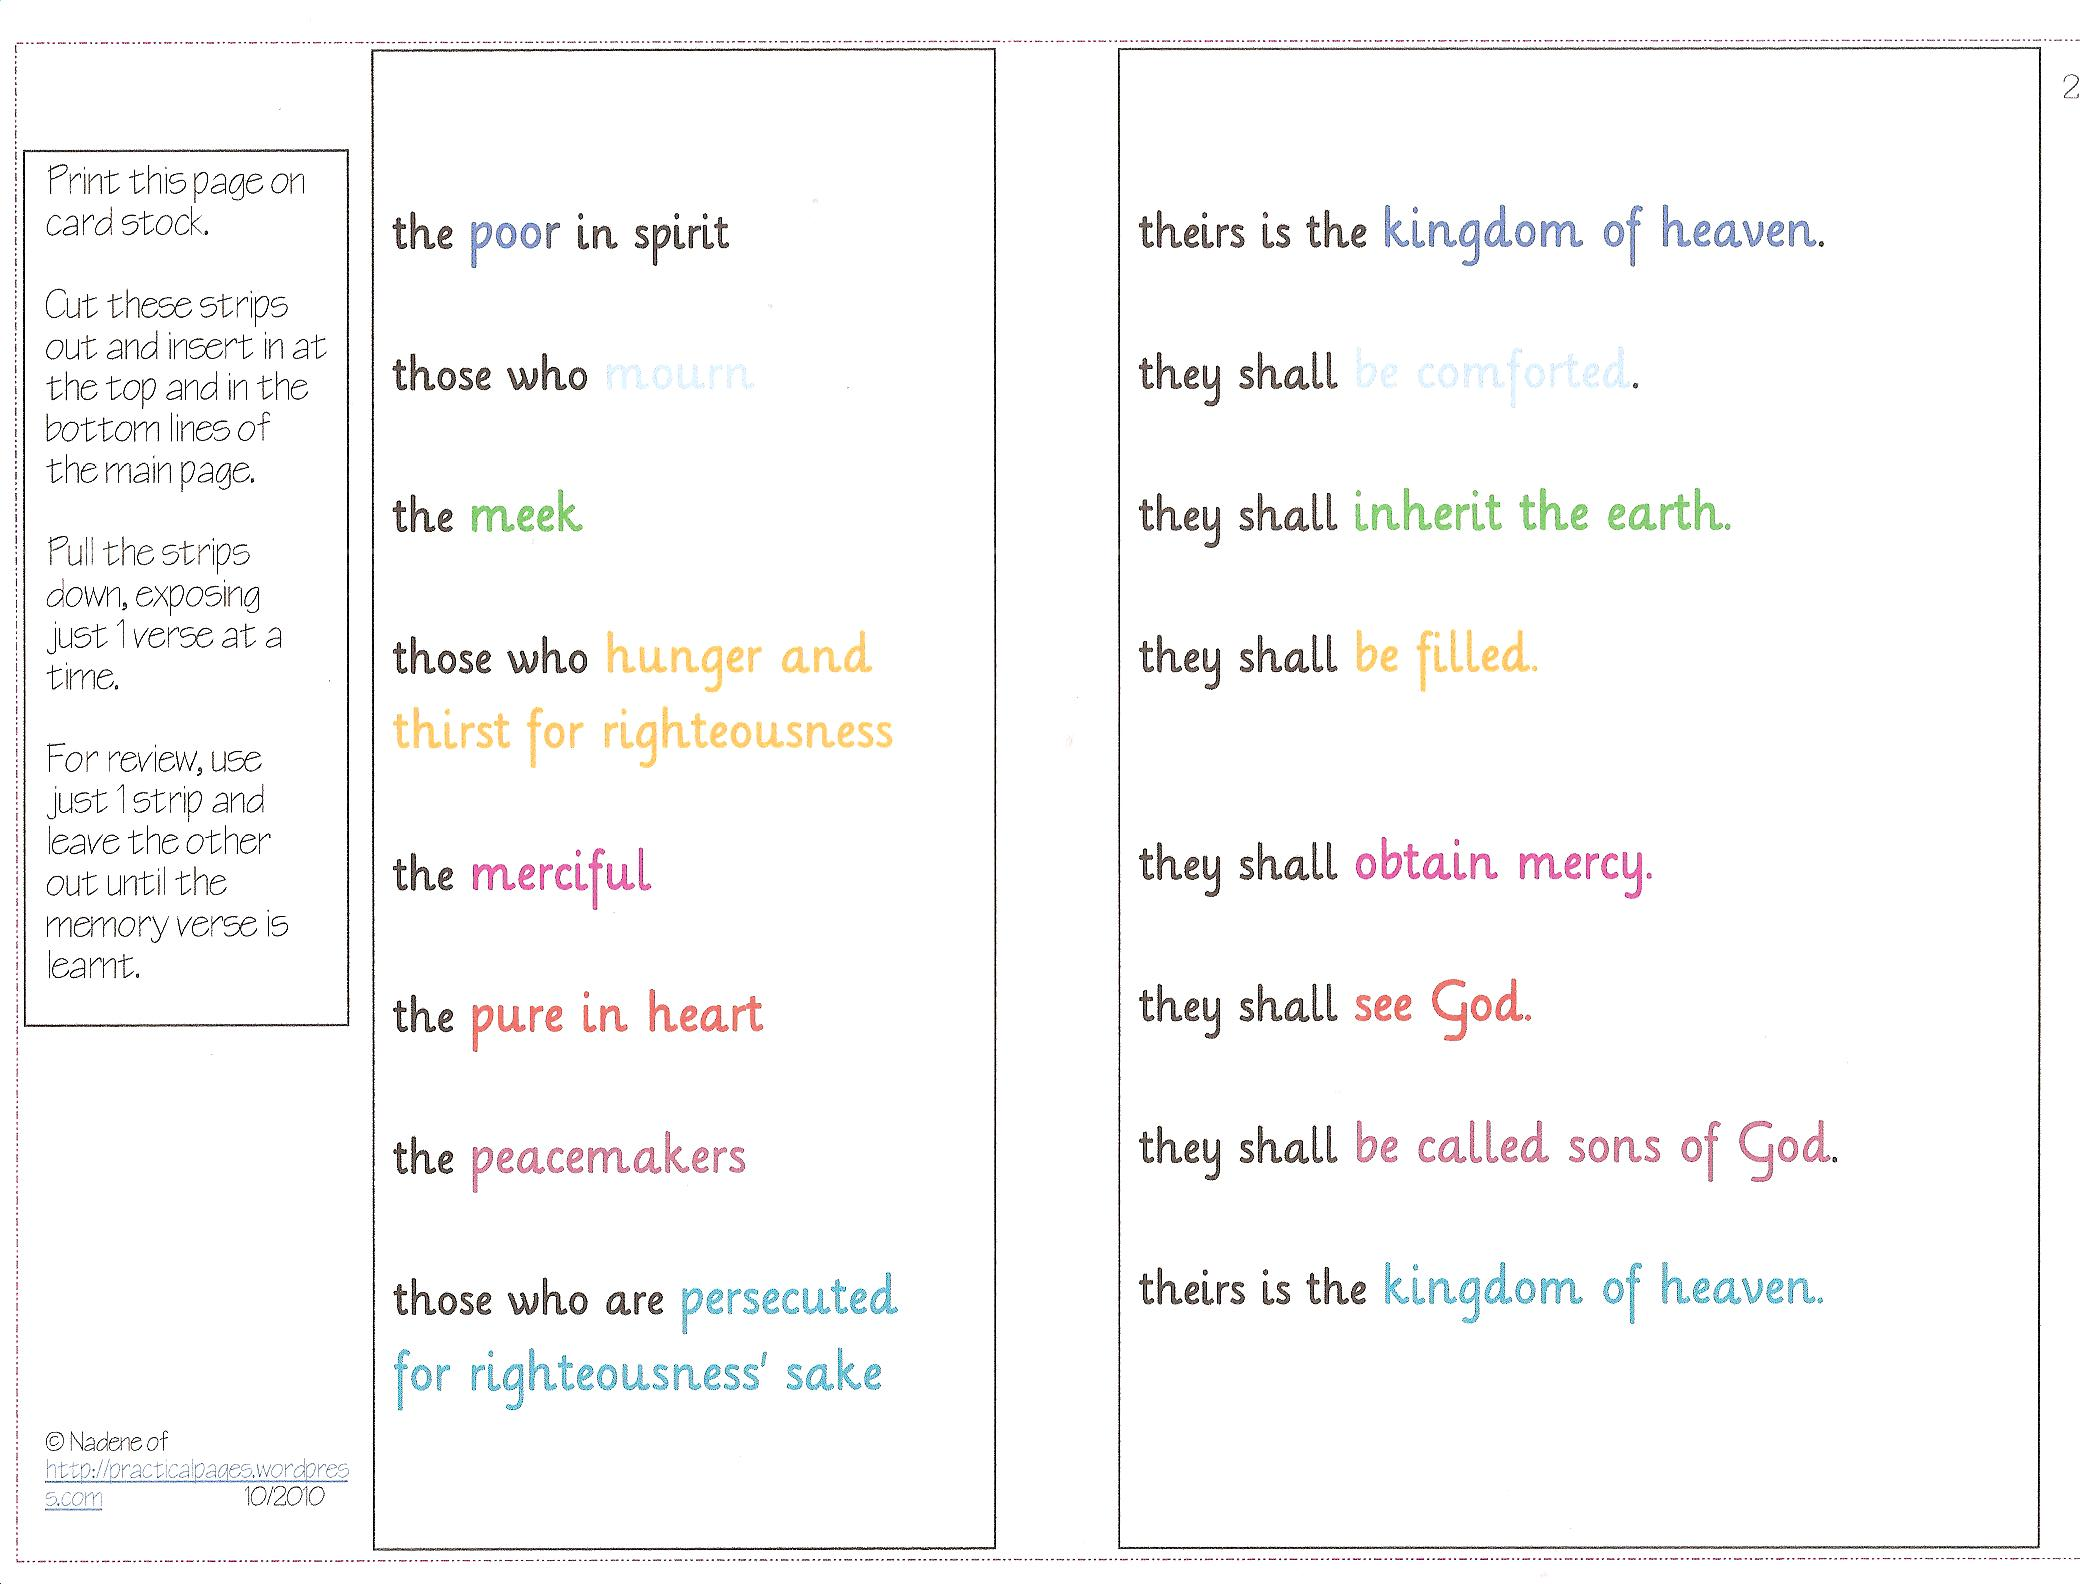 Printables Beatitudes Worksheet printables beatitudes worksheet safarmediapps worksheets 6 best images of printable matthew 5 activities printables